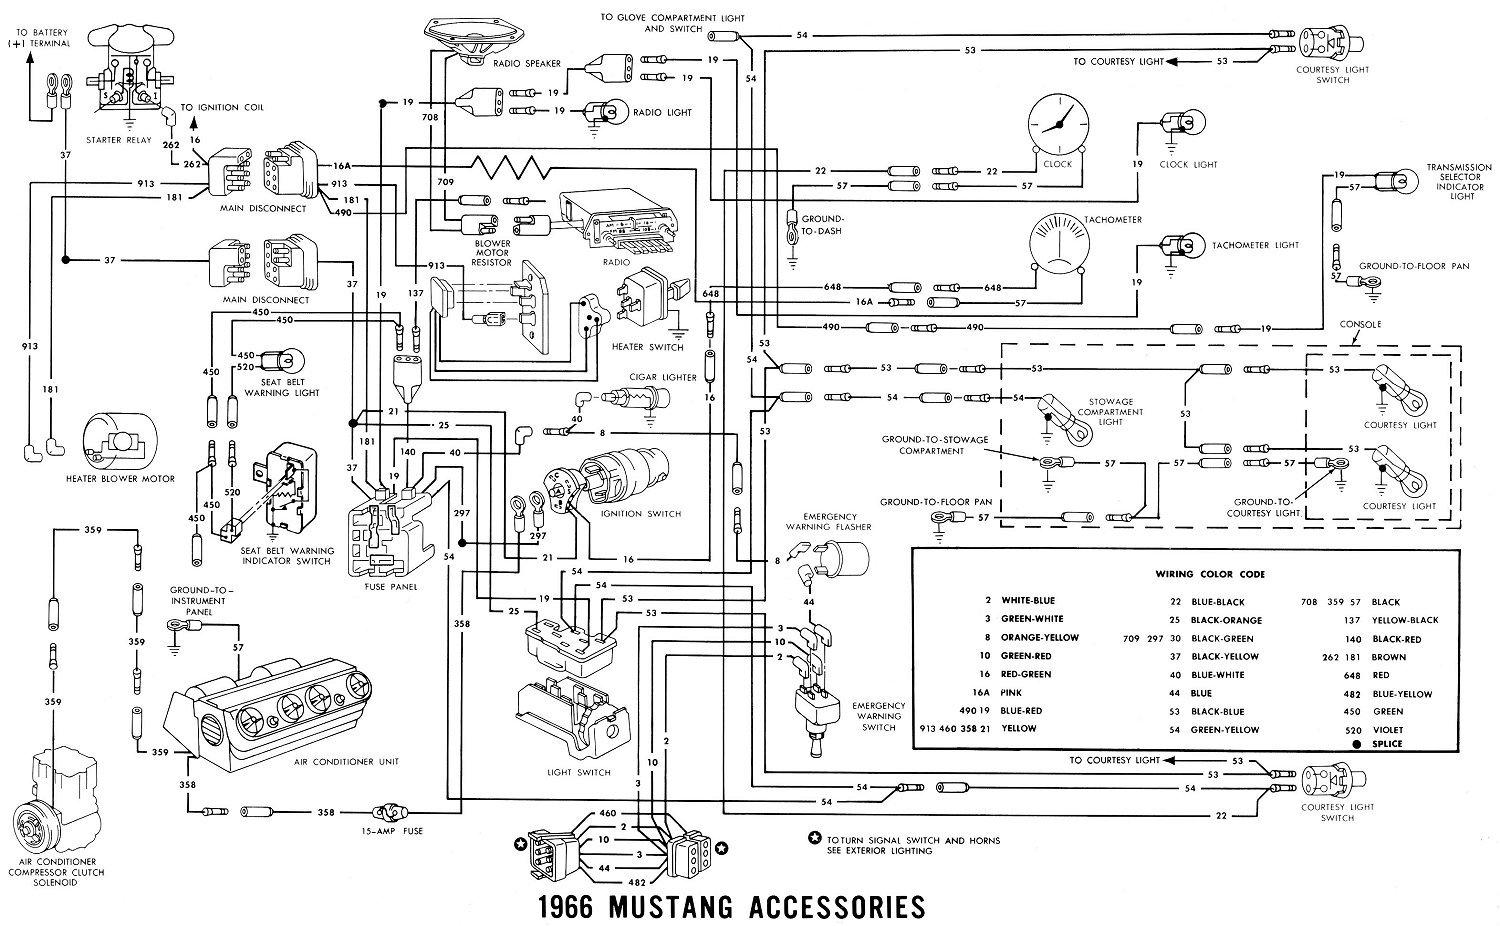 1970 Mustang Wire Diagram - Active Single Coil Pickup Wiring Diagram -  stereoa.tehsusu.decorresine.itWiring Diagram Resource